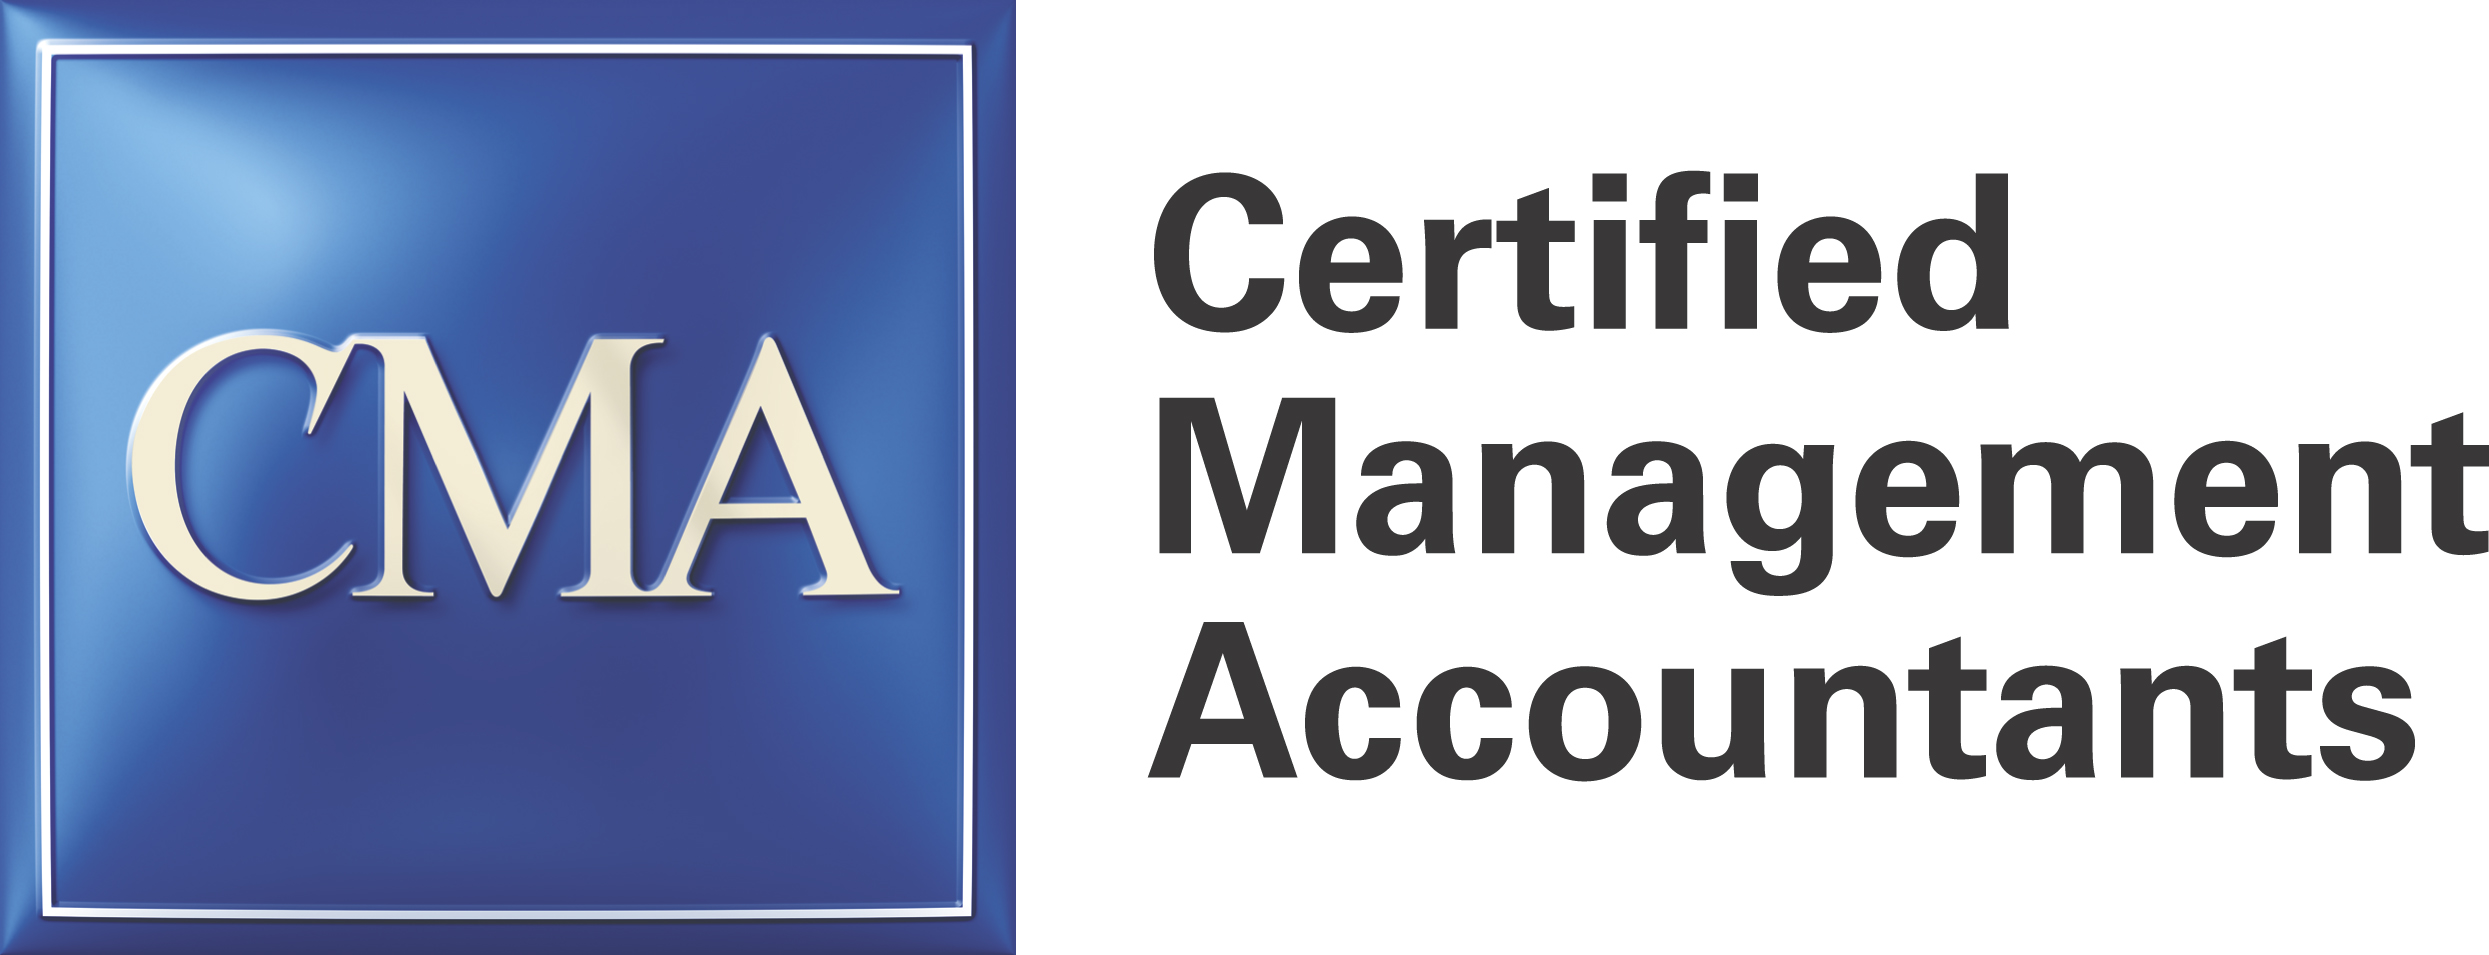 Certified Management Accountant - CMA Course in Karachi Pakistan | CMA Course In Karachi